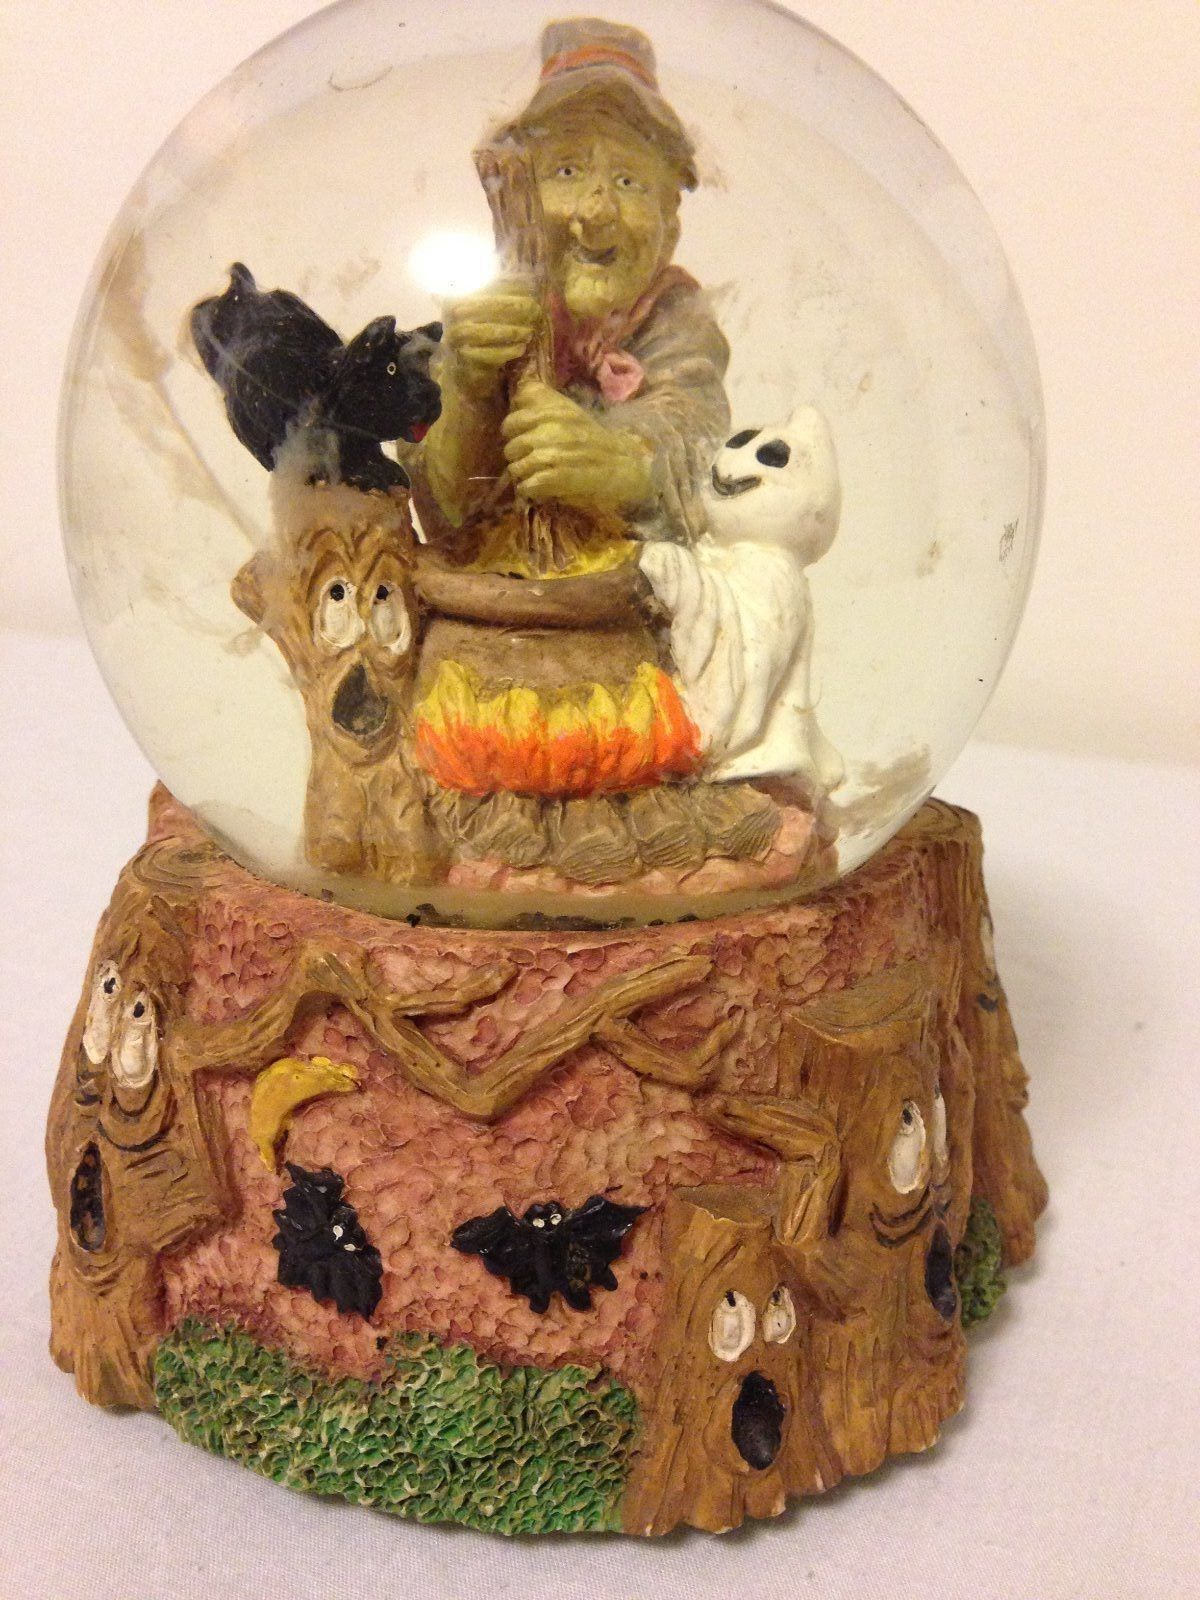 Fun Halloween Snow Globe Witch Ghost Black Cat Floating Clouds Musical | eBay